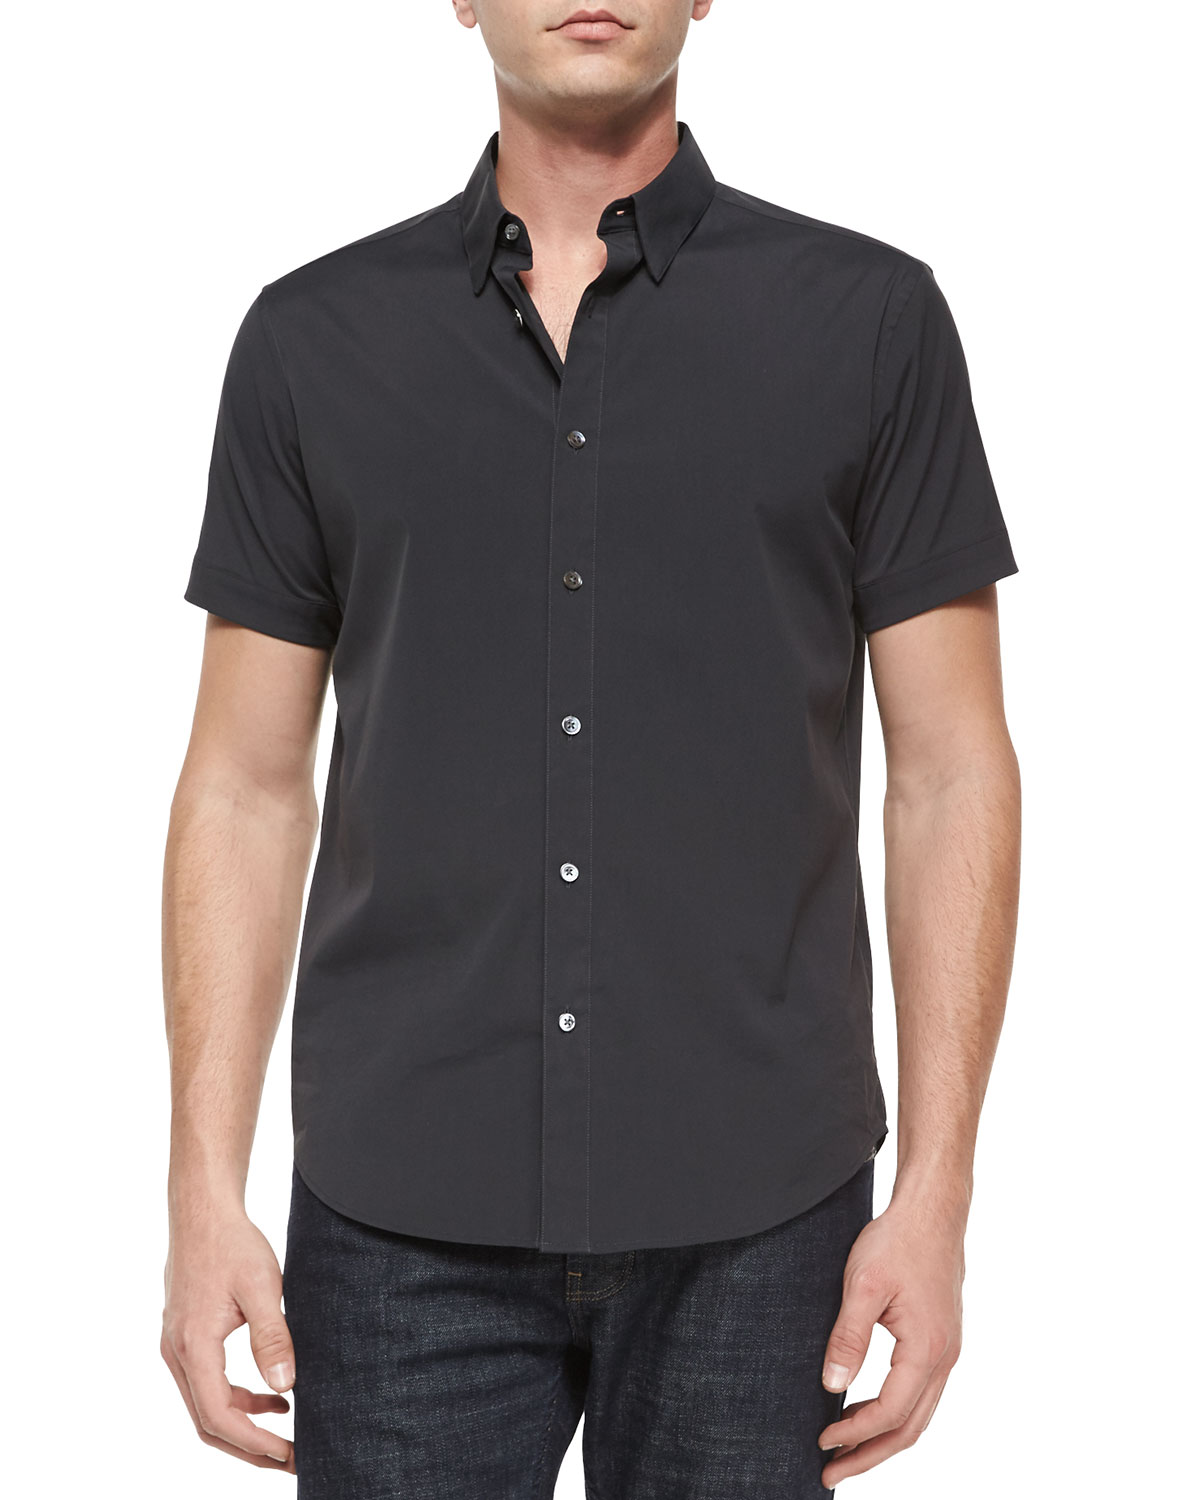 Short-Sleeve Woven Shirt, Black